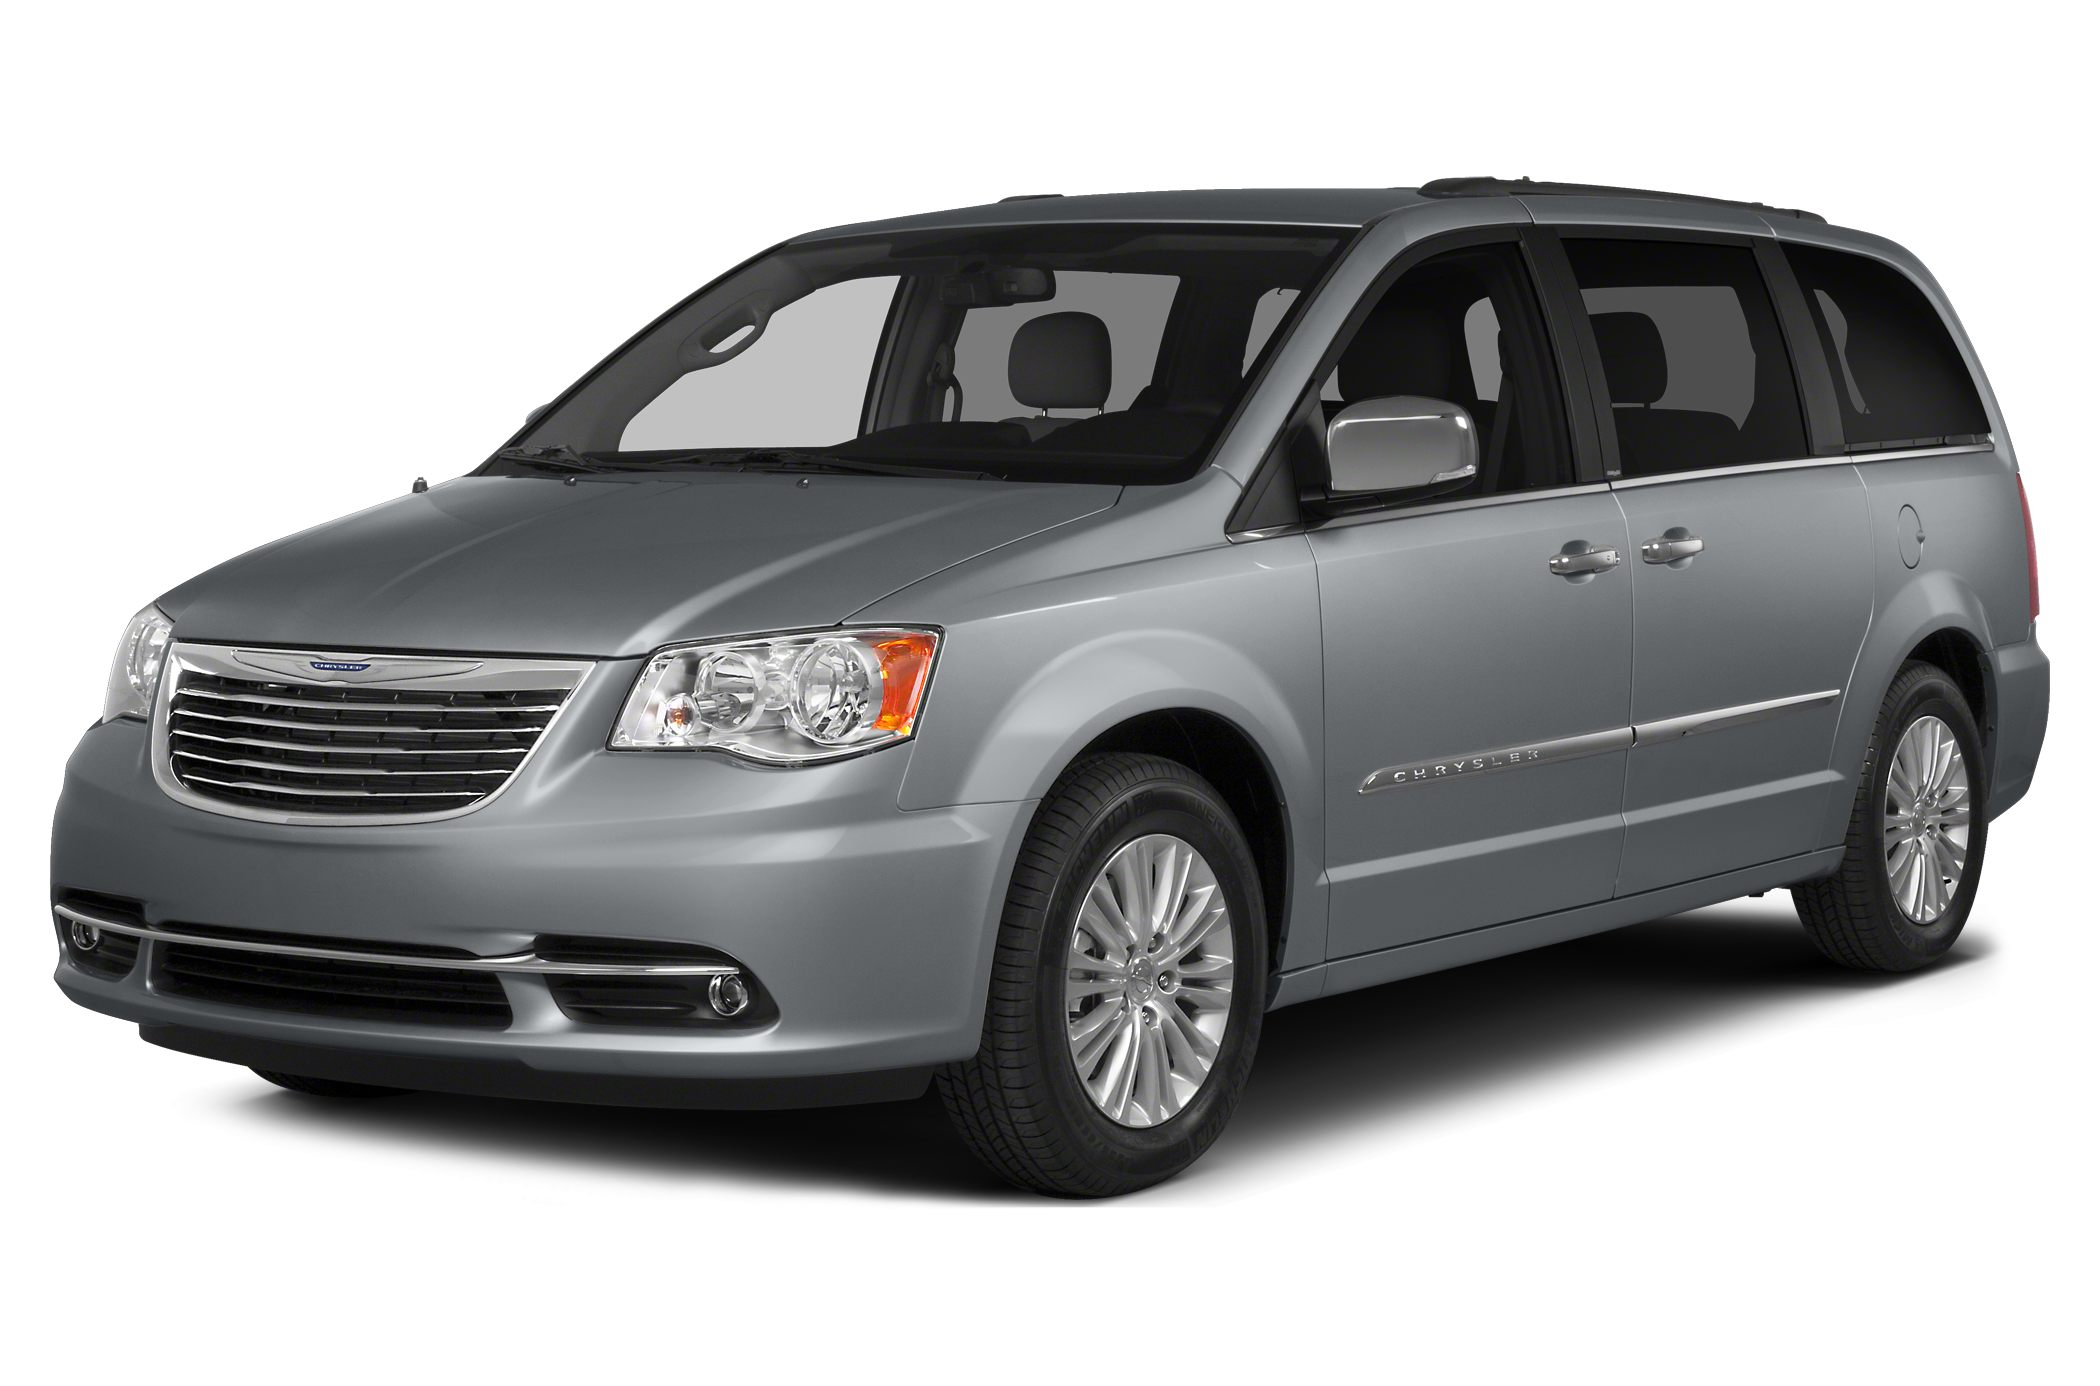 2014 Chrysler Town & Country Touring Minivan for sale in Clinton for $20,991 with 32,174 miles.